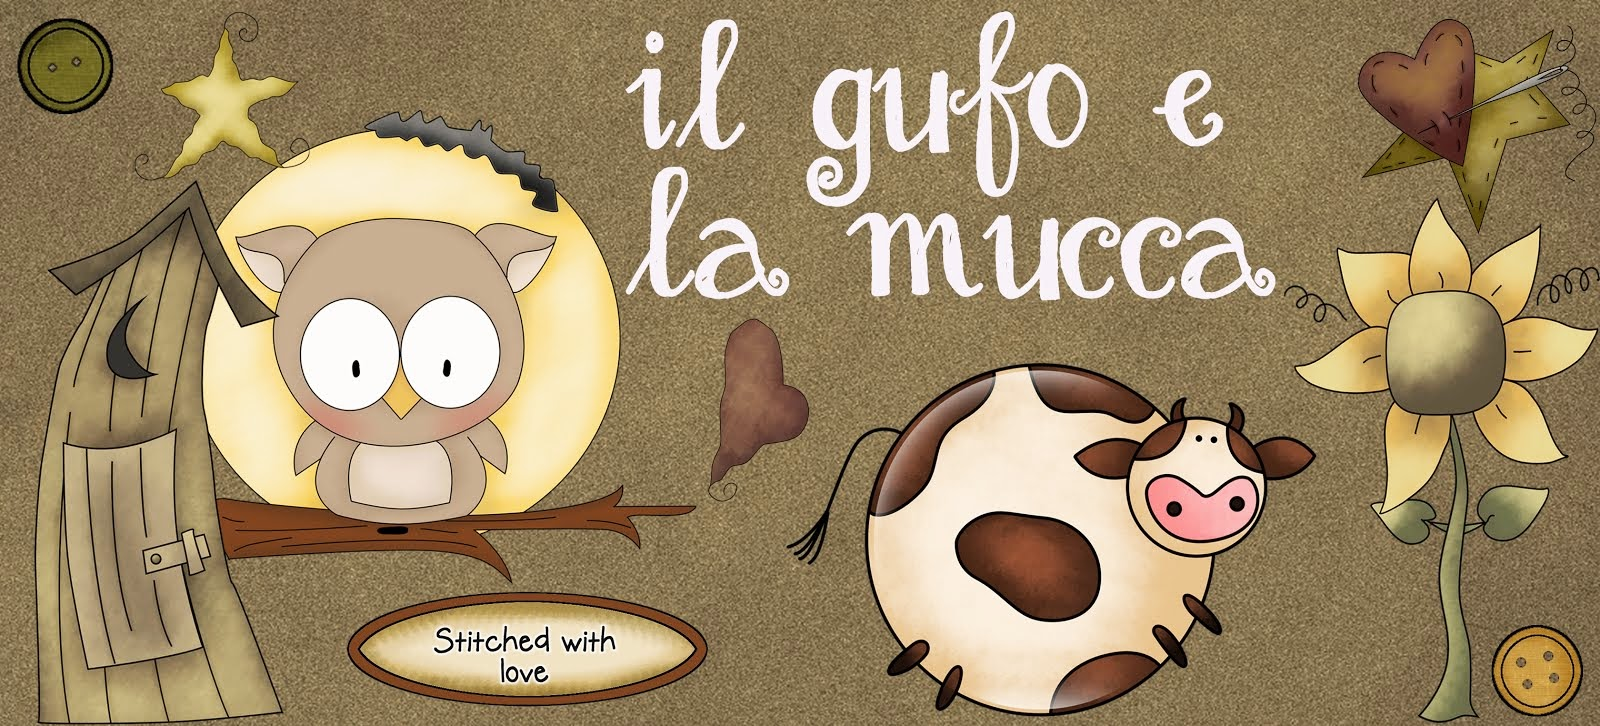 Il Gufo e La Mucca